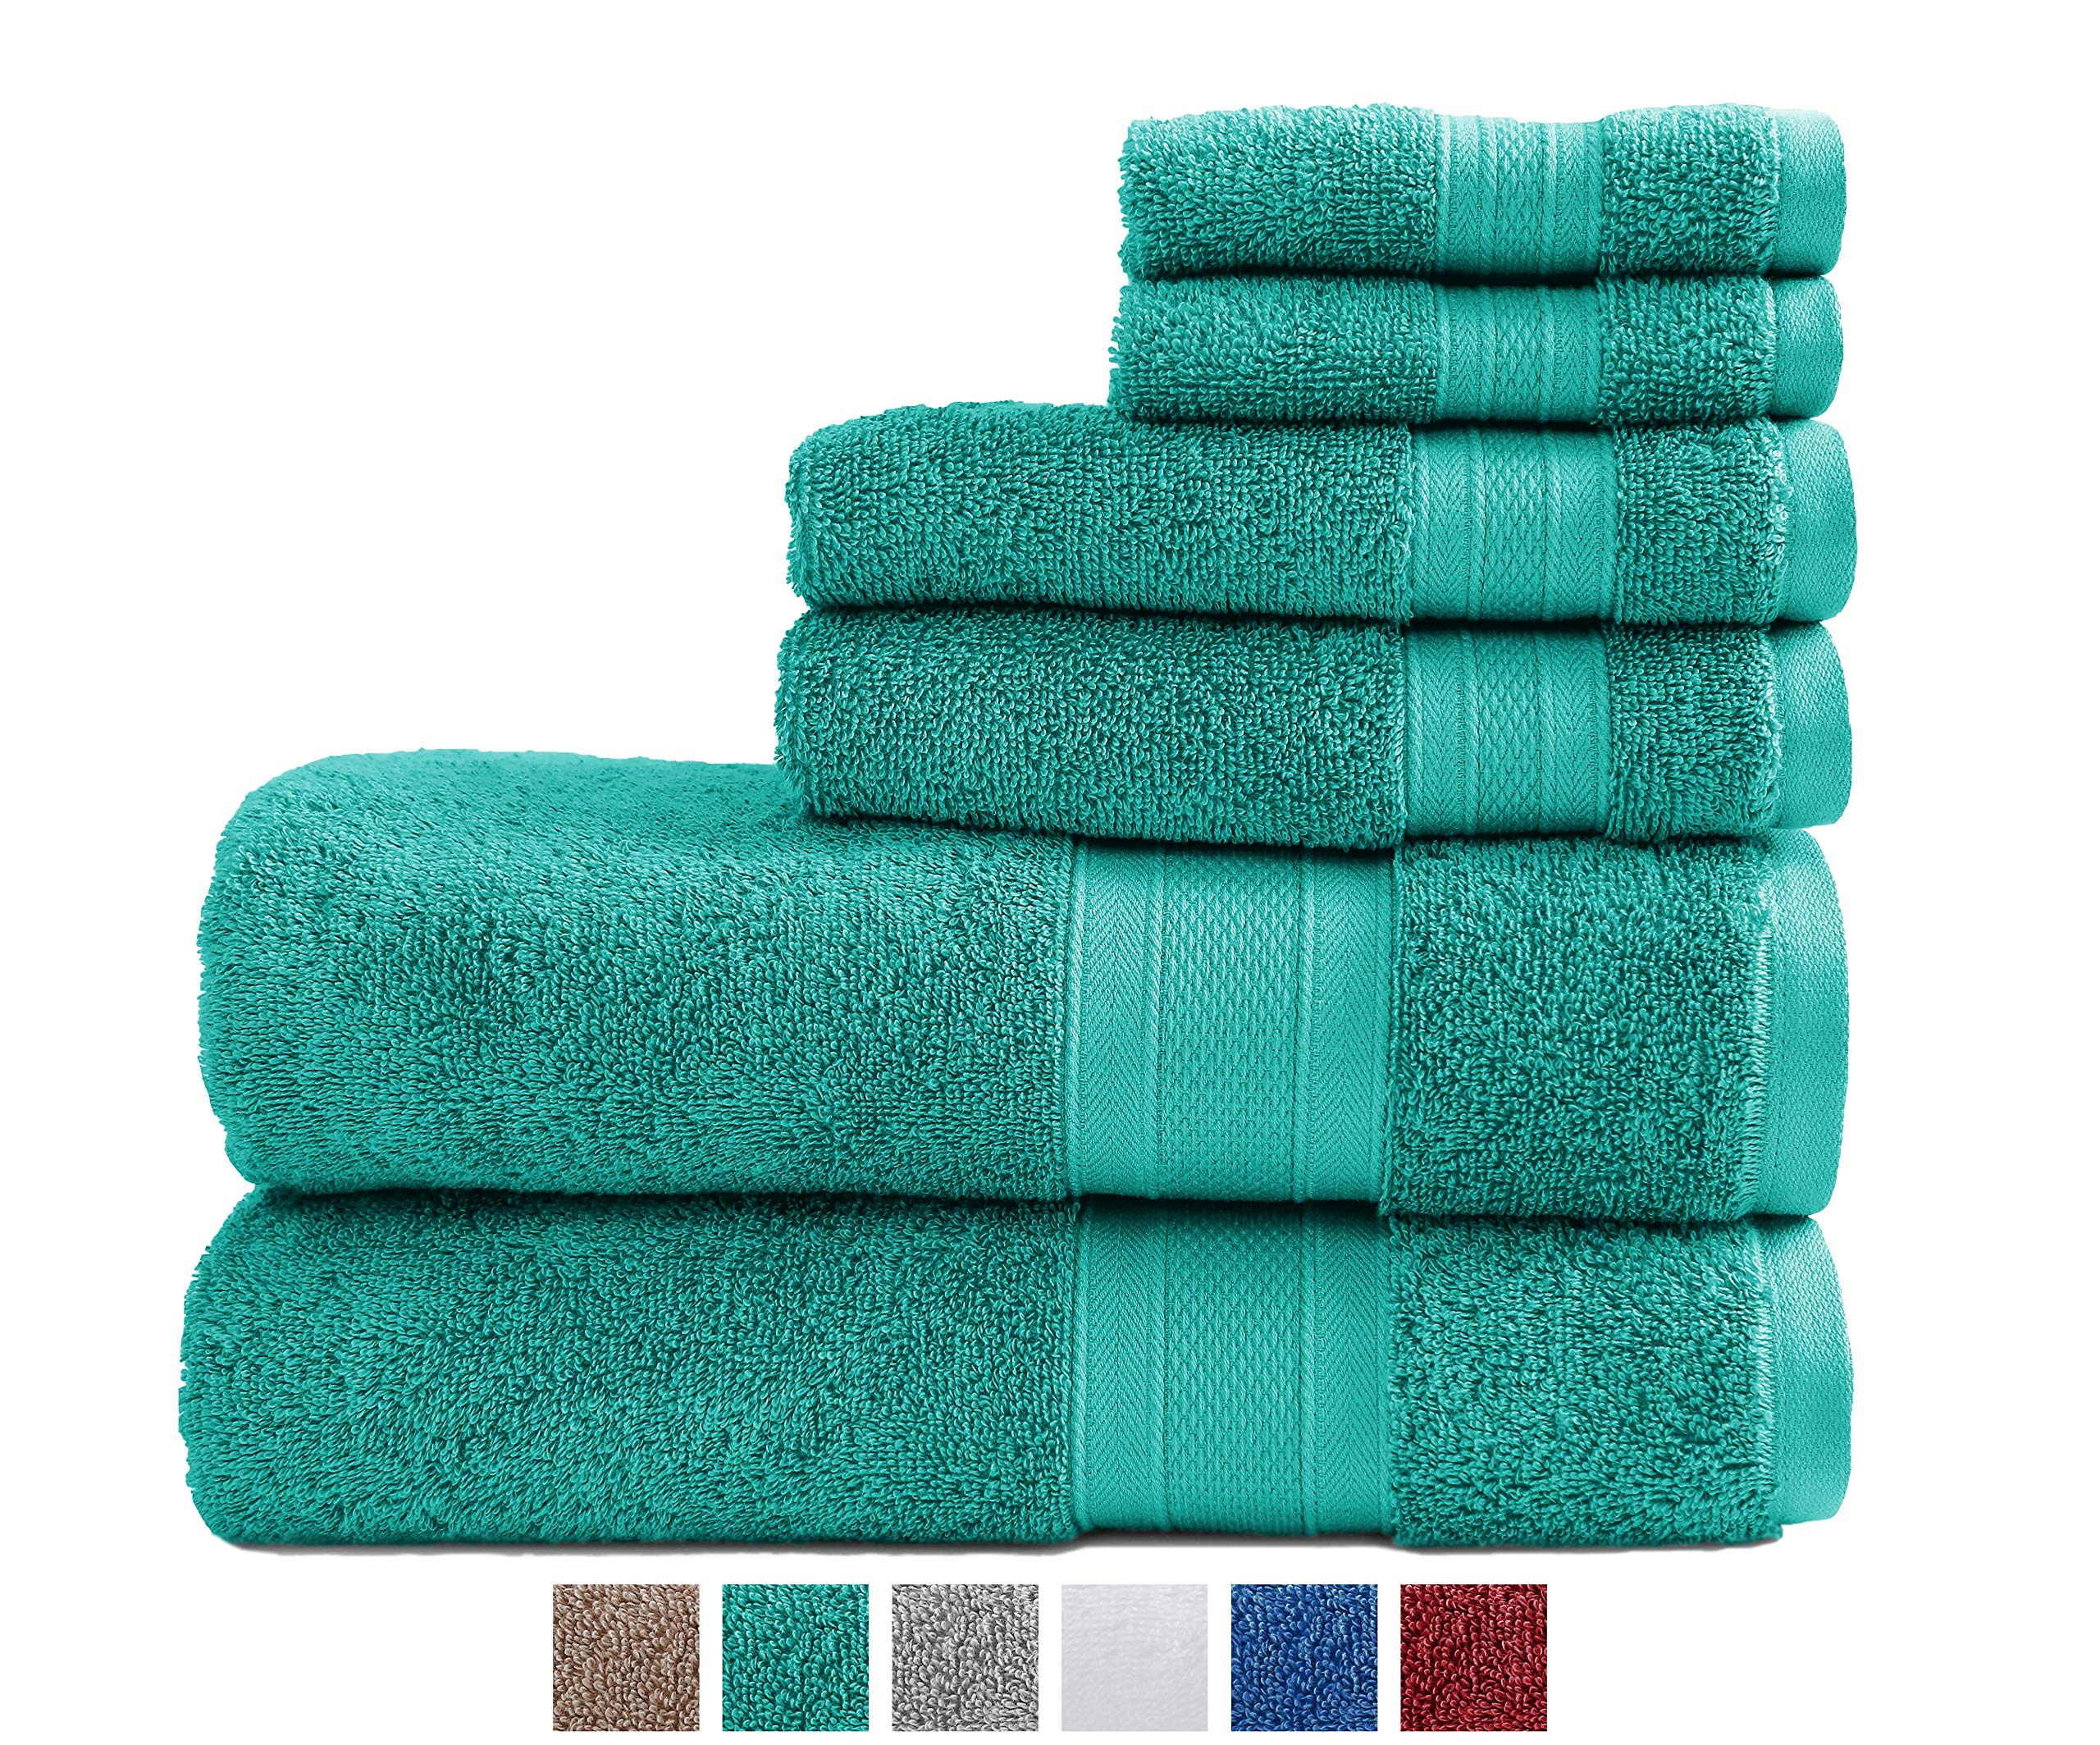 Trident 100% Cotton Towels, 6 Piece Set - 2 Bath Towels, 2 Washcloths, 2 Face Towels, Super Soft and Highly Absorbent, Soft & Plush Bath Towels, 14 lbs/dzn (Teal)